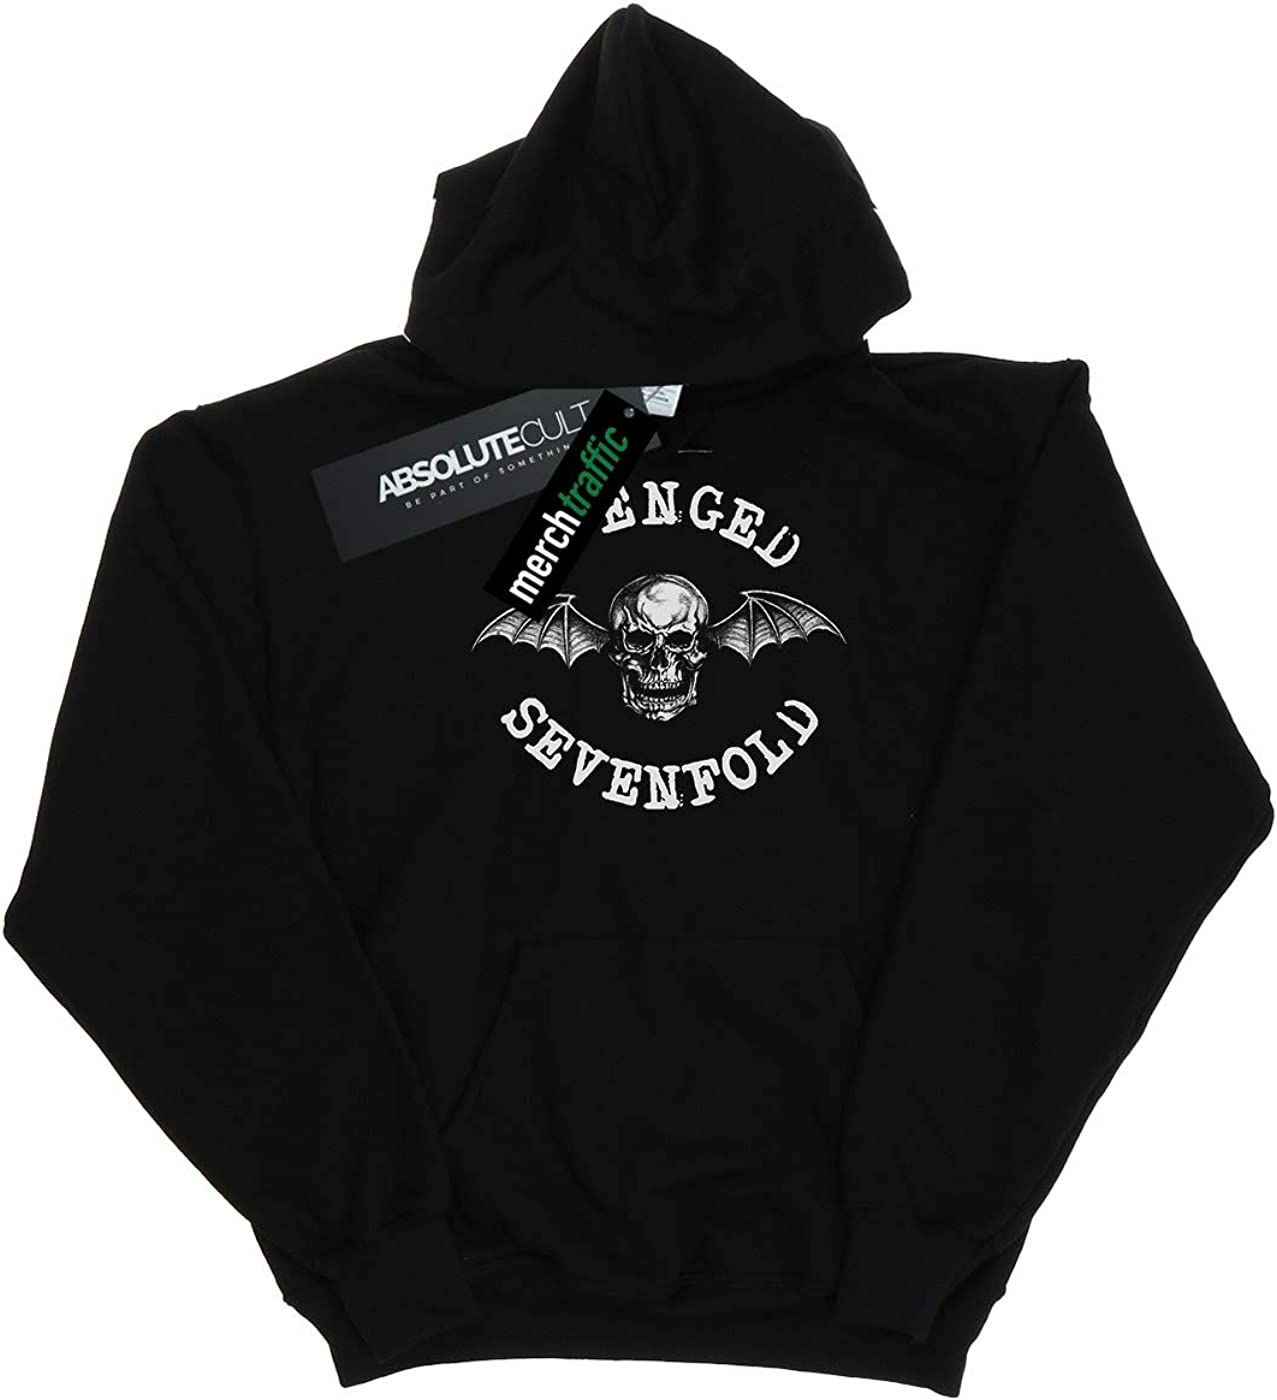 ABSOLUTECULT Avenged Sevenfold Boys Death Bat Hoodie